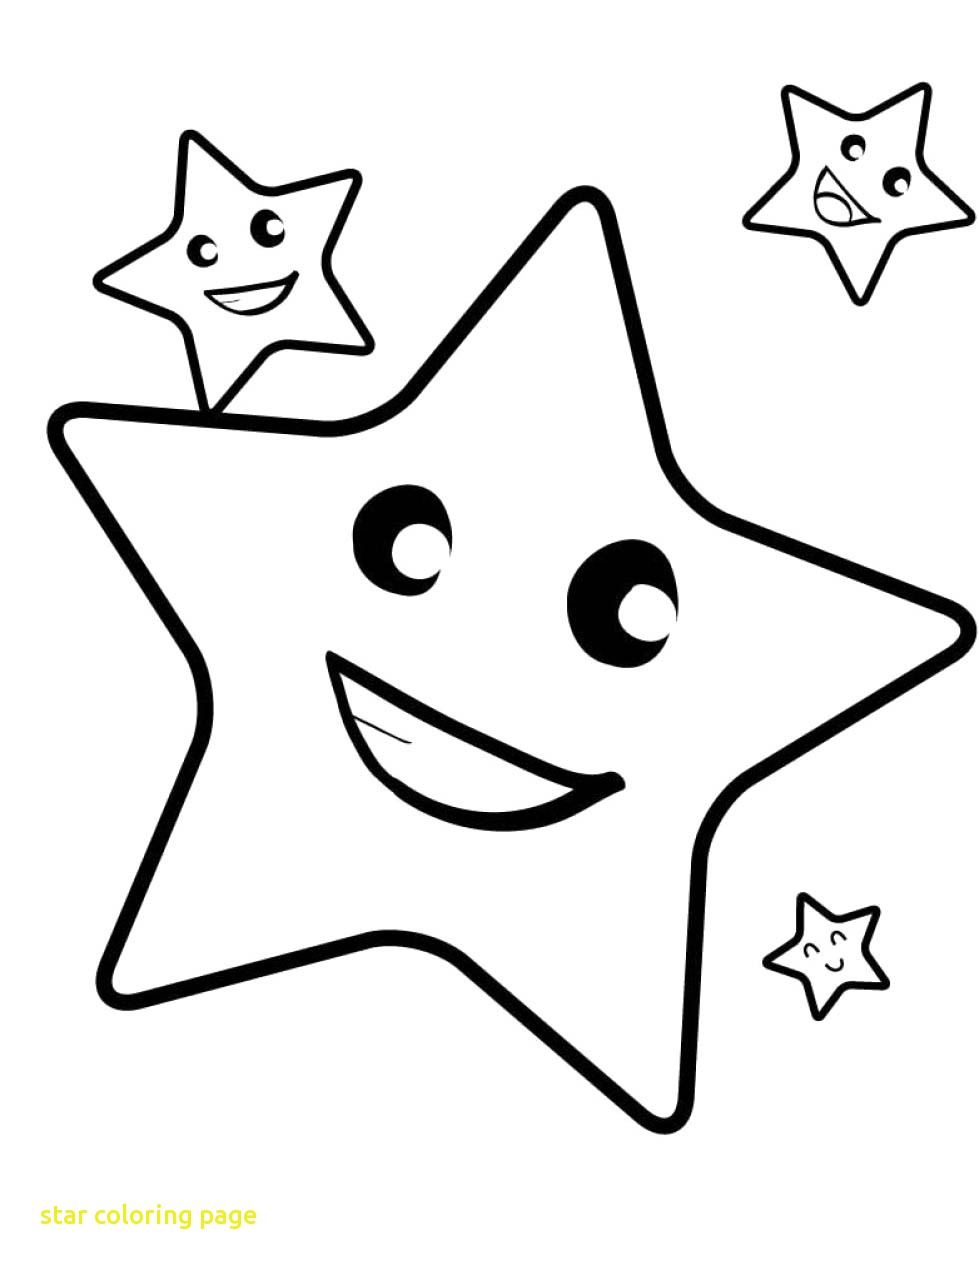 coloring star images star shape coloring page at getcoloringscom free coloring star images